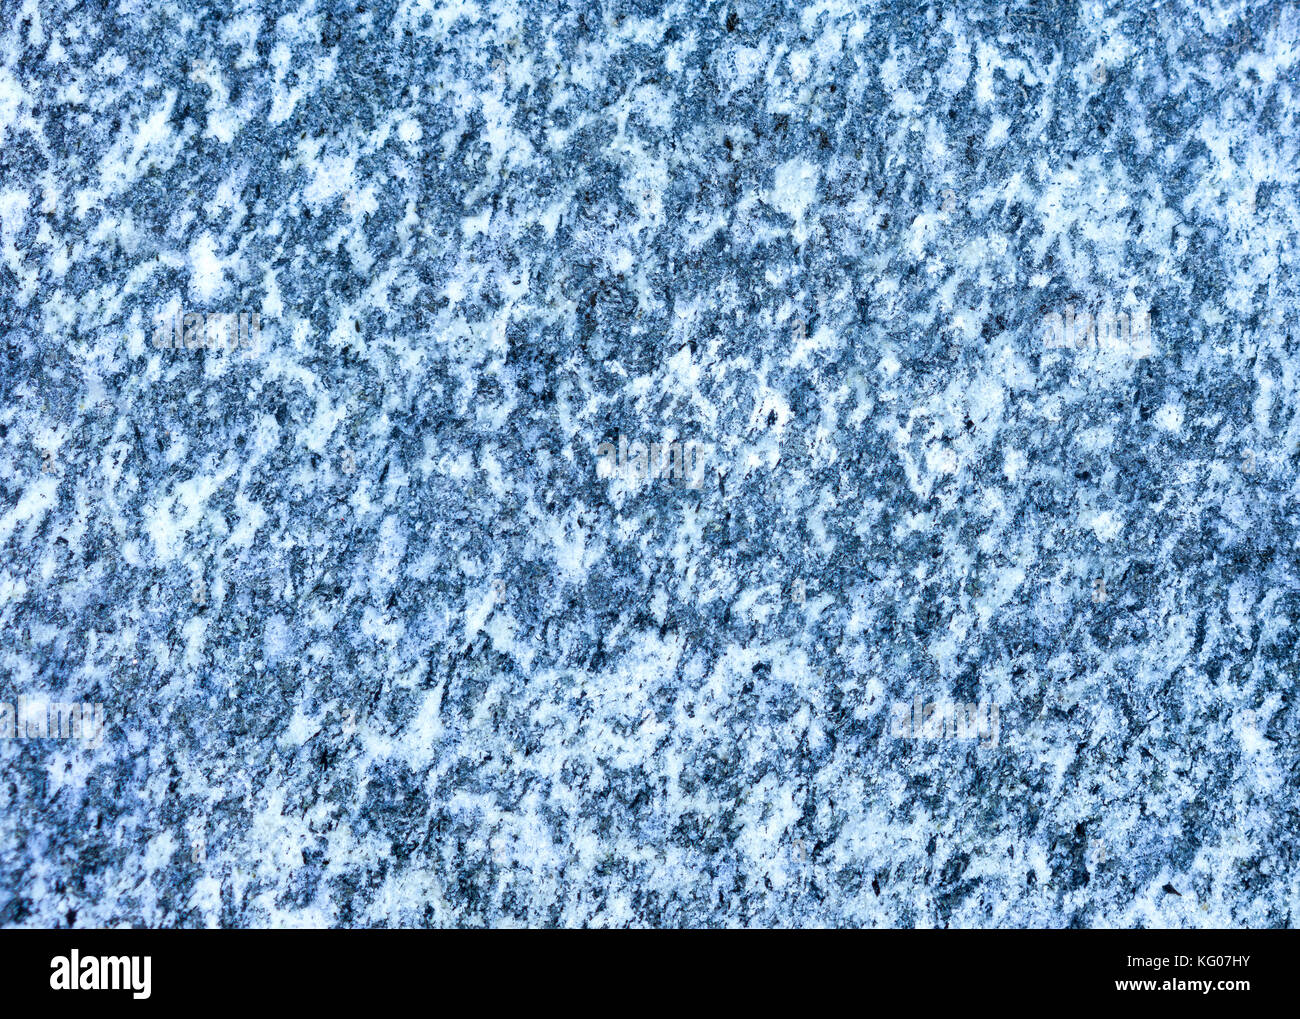 Blue Granite Stone texture natural light surface for sill, steps ...